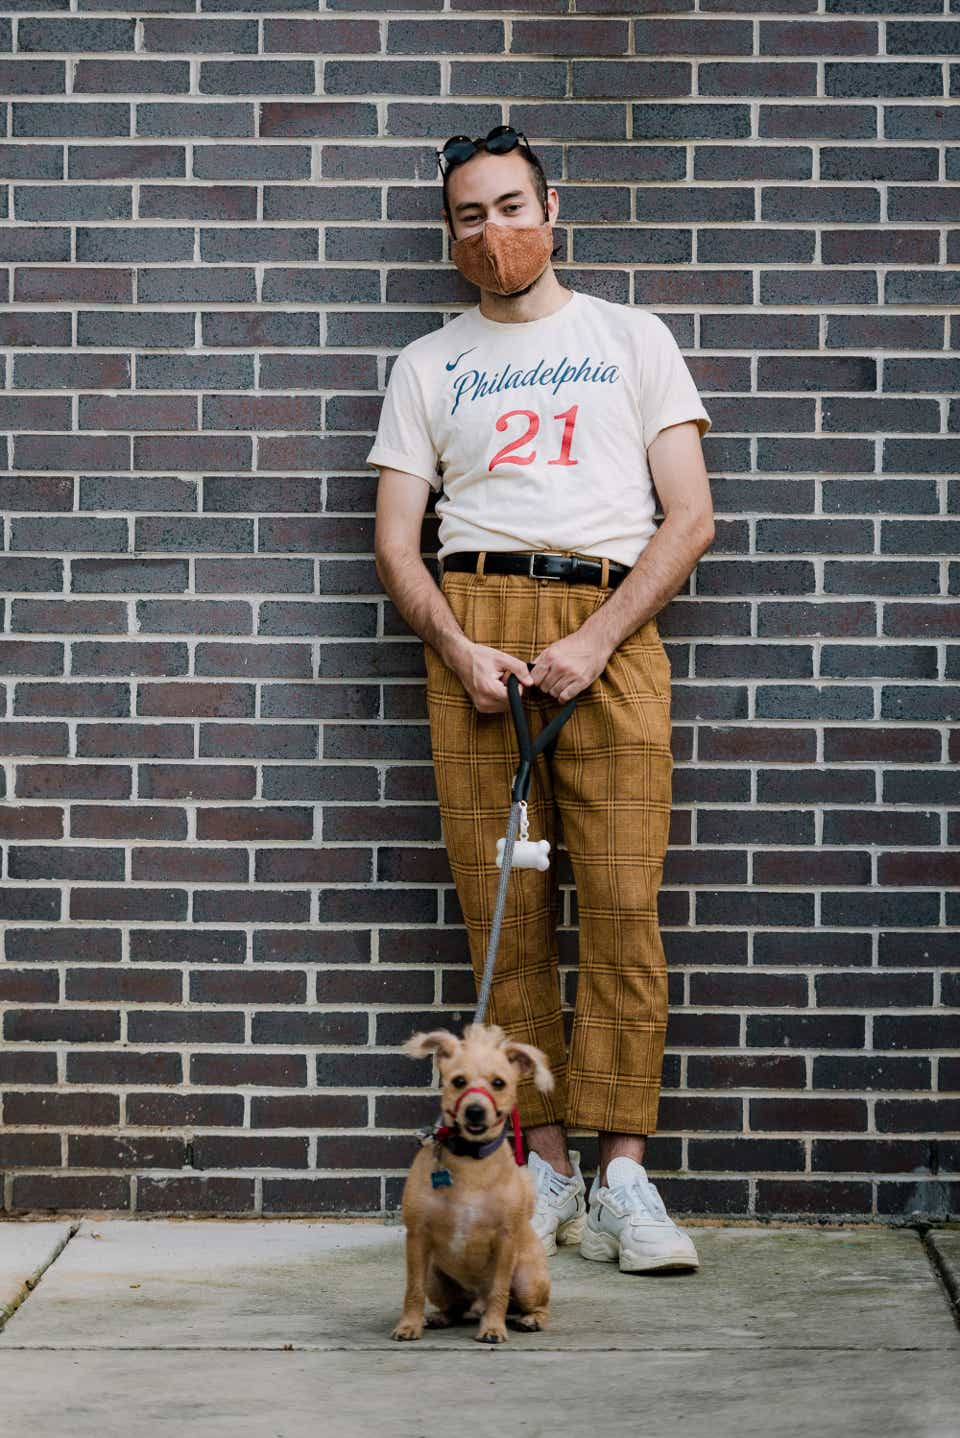 Nick is posing with his dog in a terracotta-colored mask and matching trousers. He also has on a vintage Philadelphia 76ers T-shirt and Adidas sneakers.